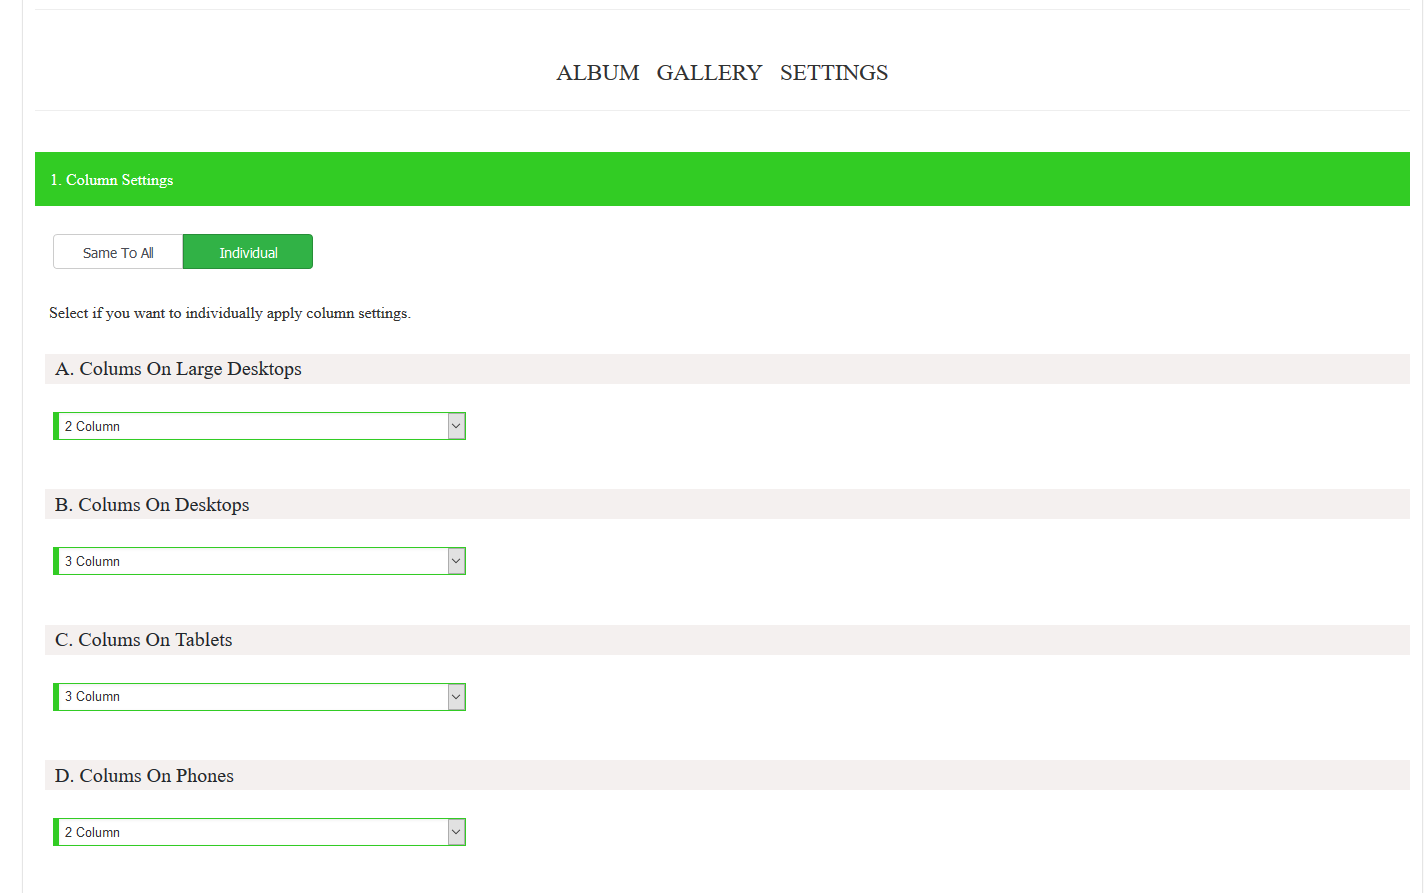 create album gallery premium 2